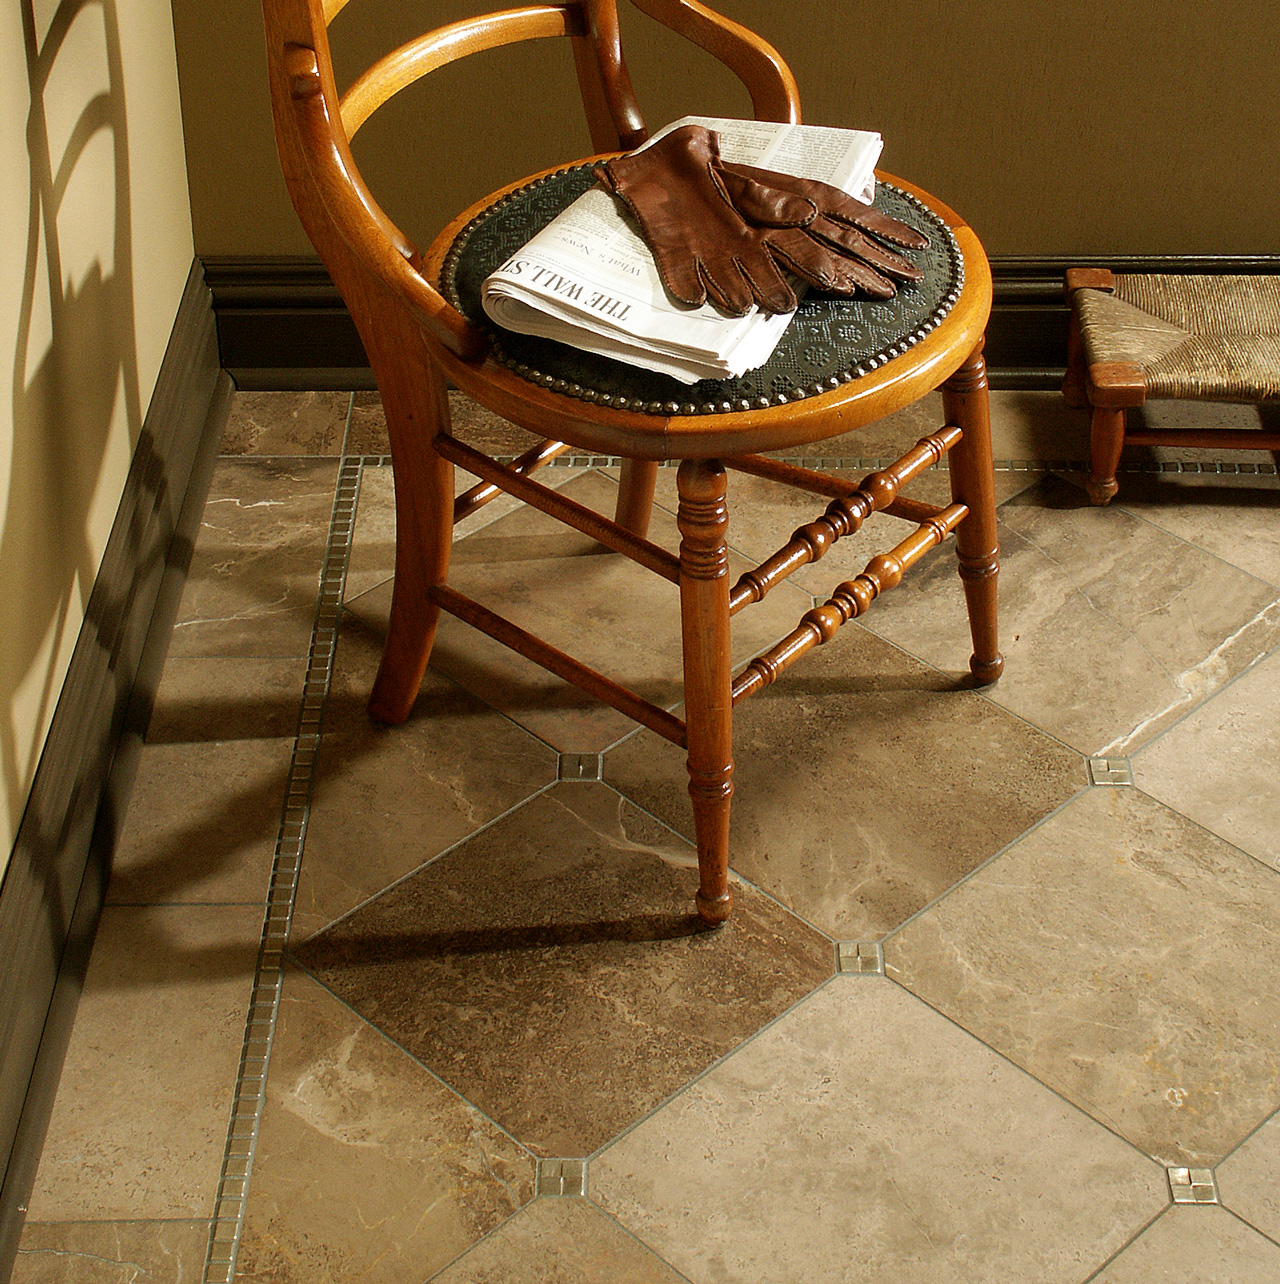 Metal accent tiles and liners: Mosaic Liner and Terrace in Traditional Bronze set in a limestone floor